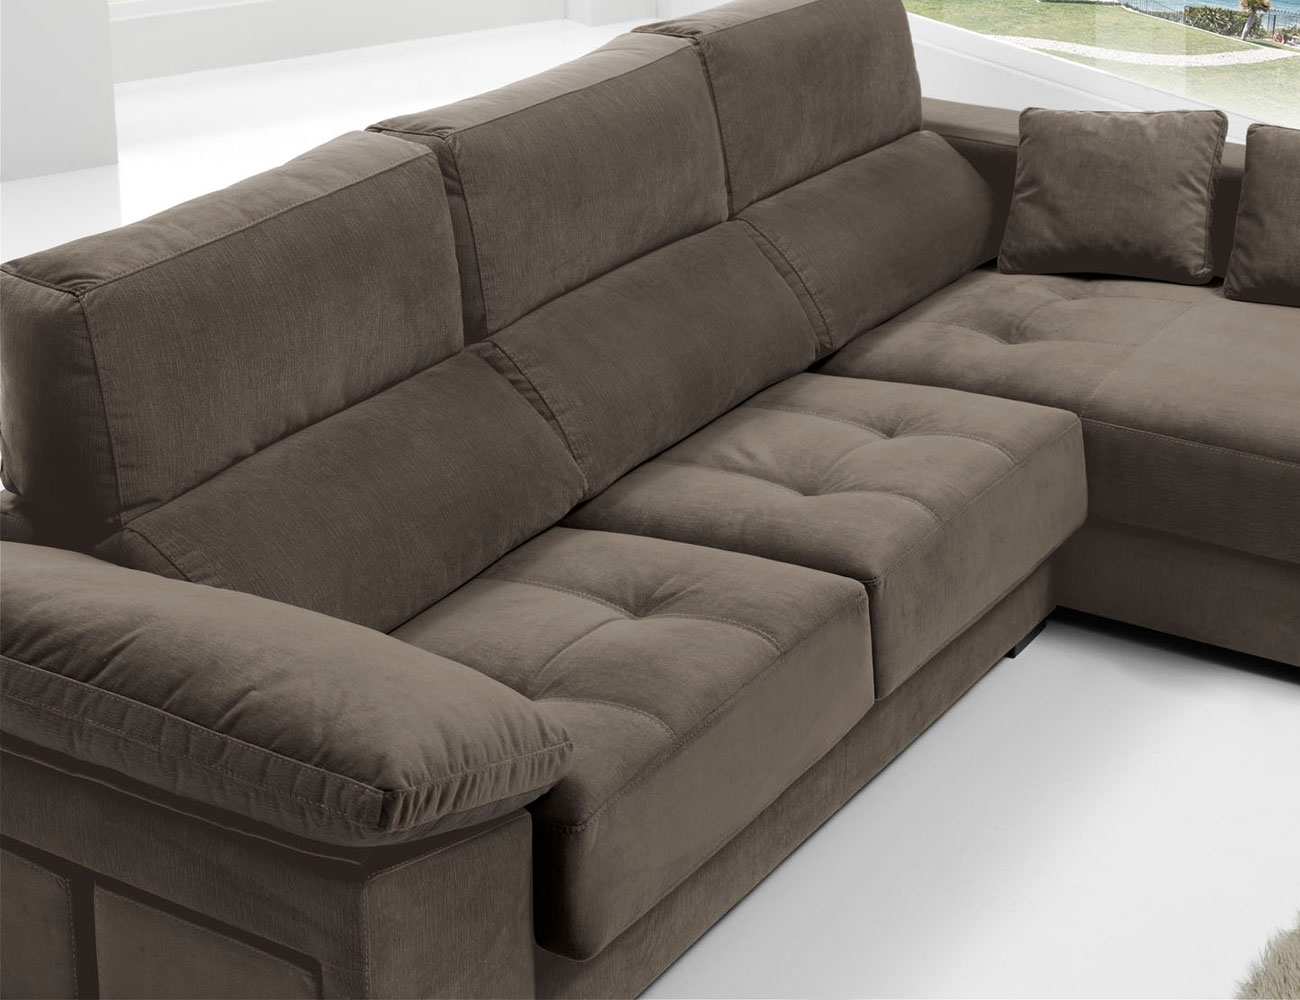 Sofa chaiselongue anti manchas bering pouf 285